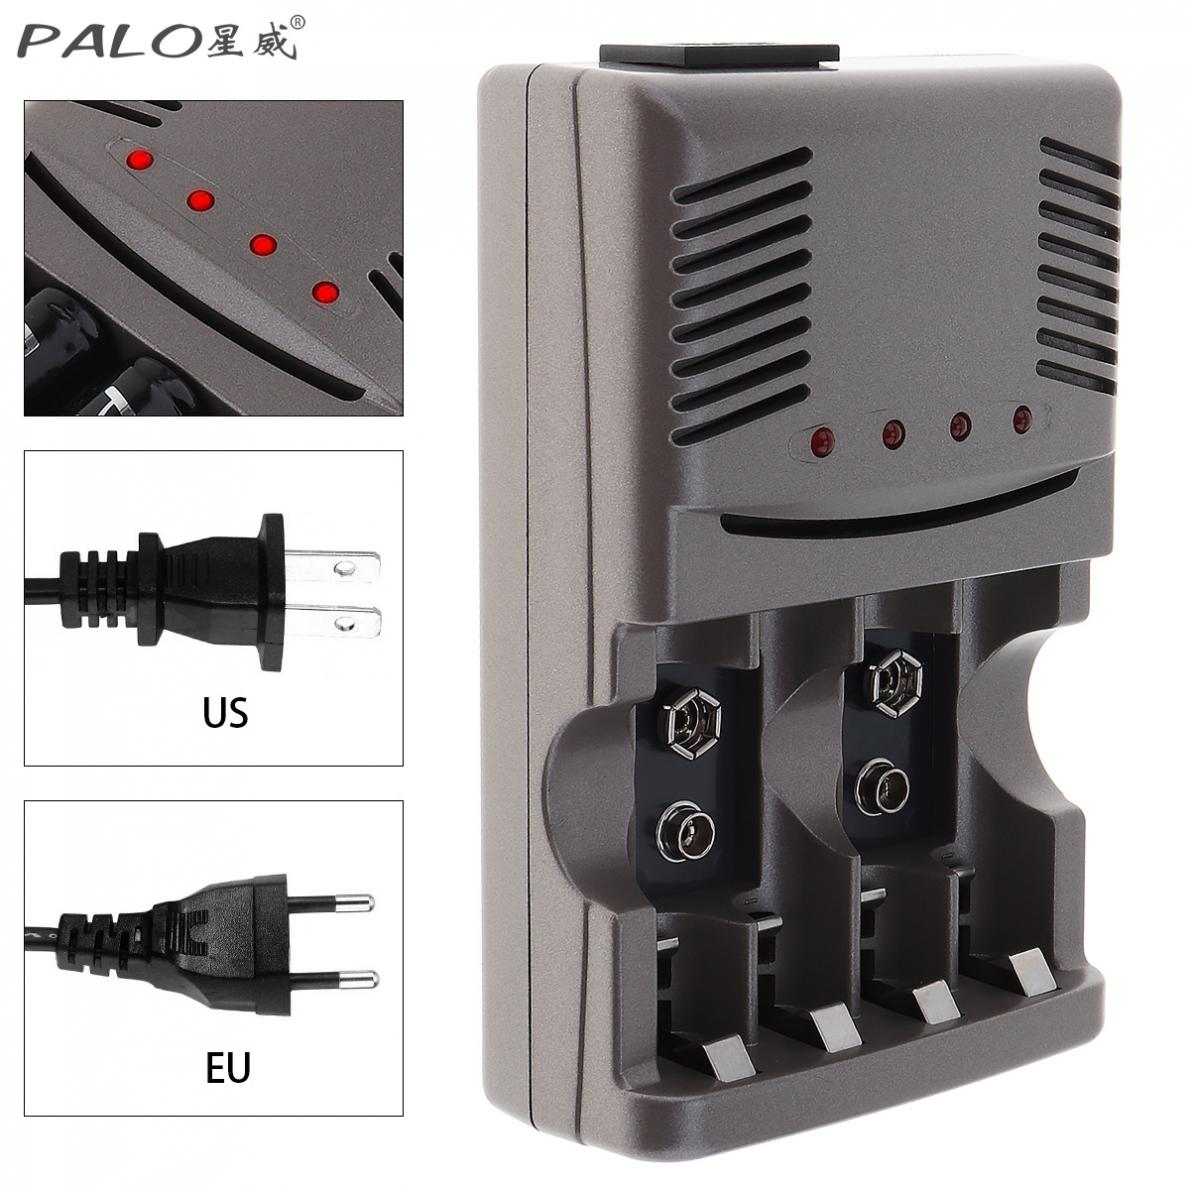 PALO C819 LED Light Smart <font><b>Charger</b></font> For NI-MH NI-CD AA AAA Rechargeable <font><b>Batteries</b></font> For NI-CD LI-ION <font><b>9V</b></font> 6F22 <font><b>Battery</b></font> US / <font><b>EU</b></font> Plug image